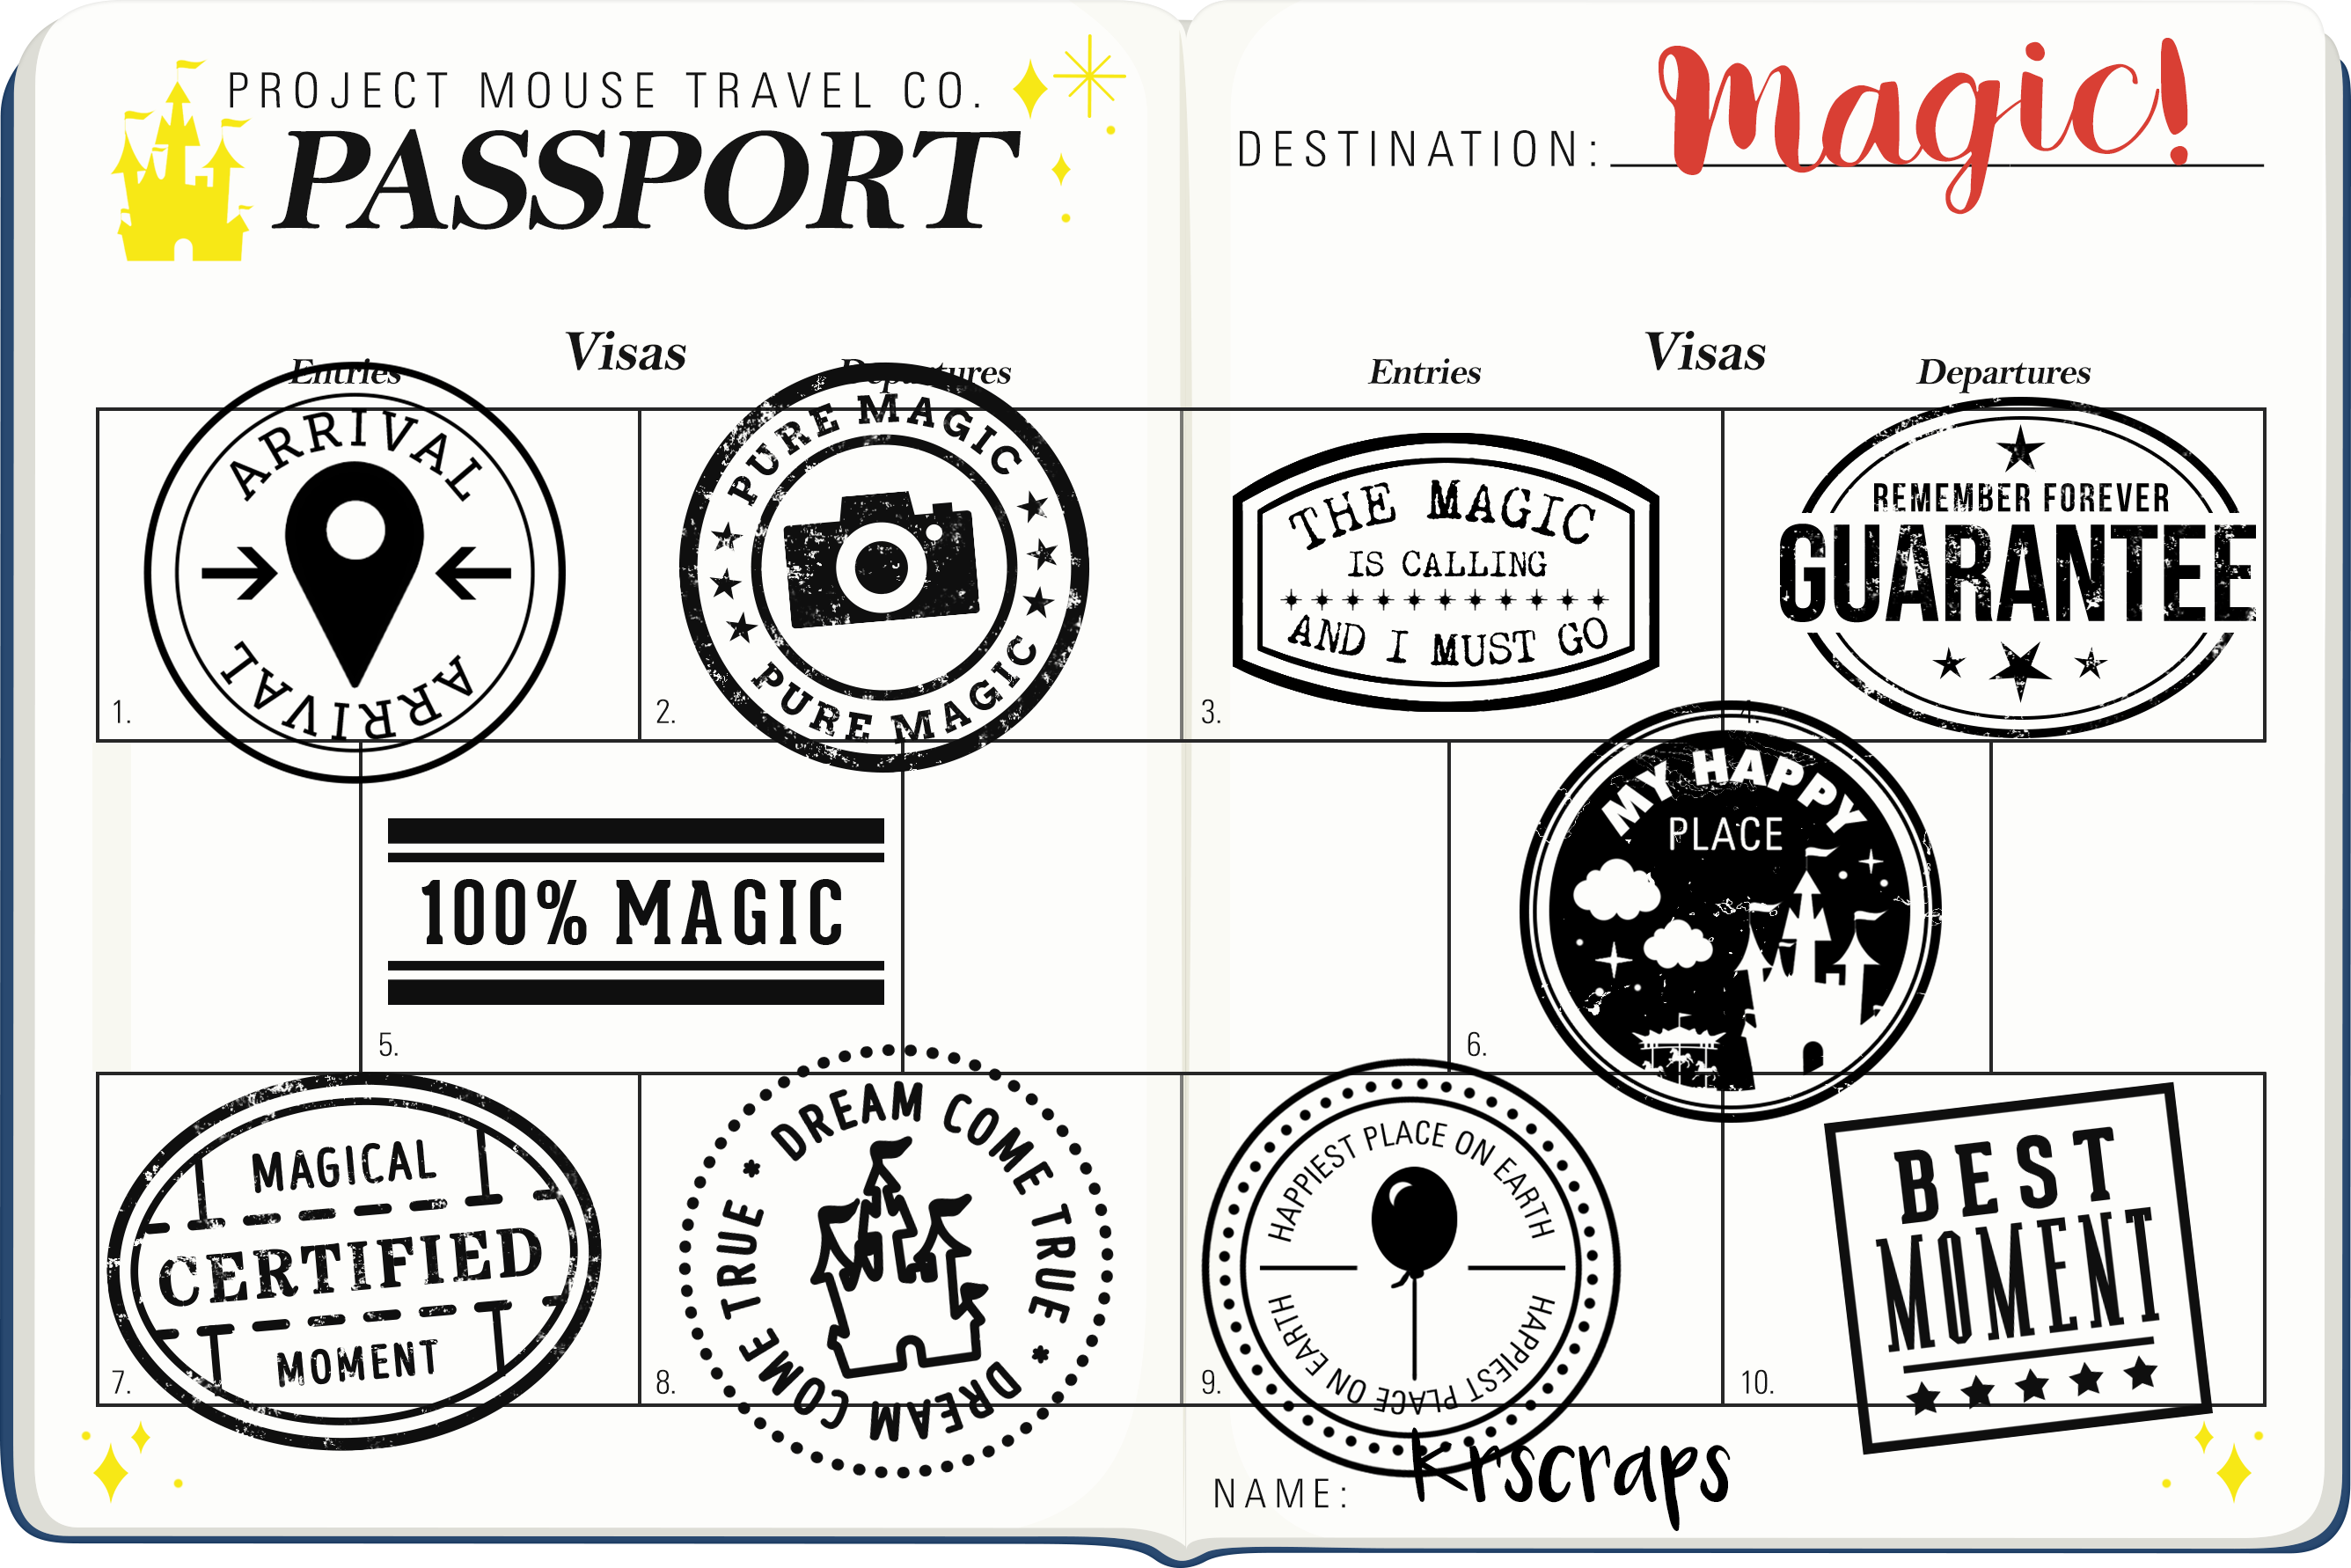 pm_stamps_passport_completed.png